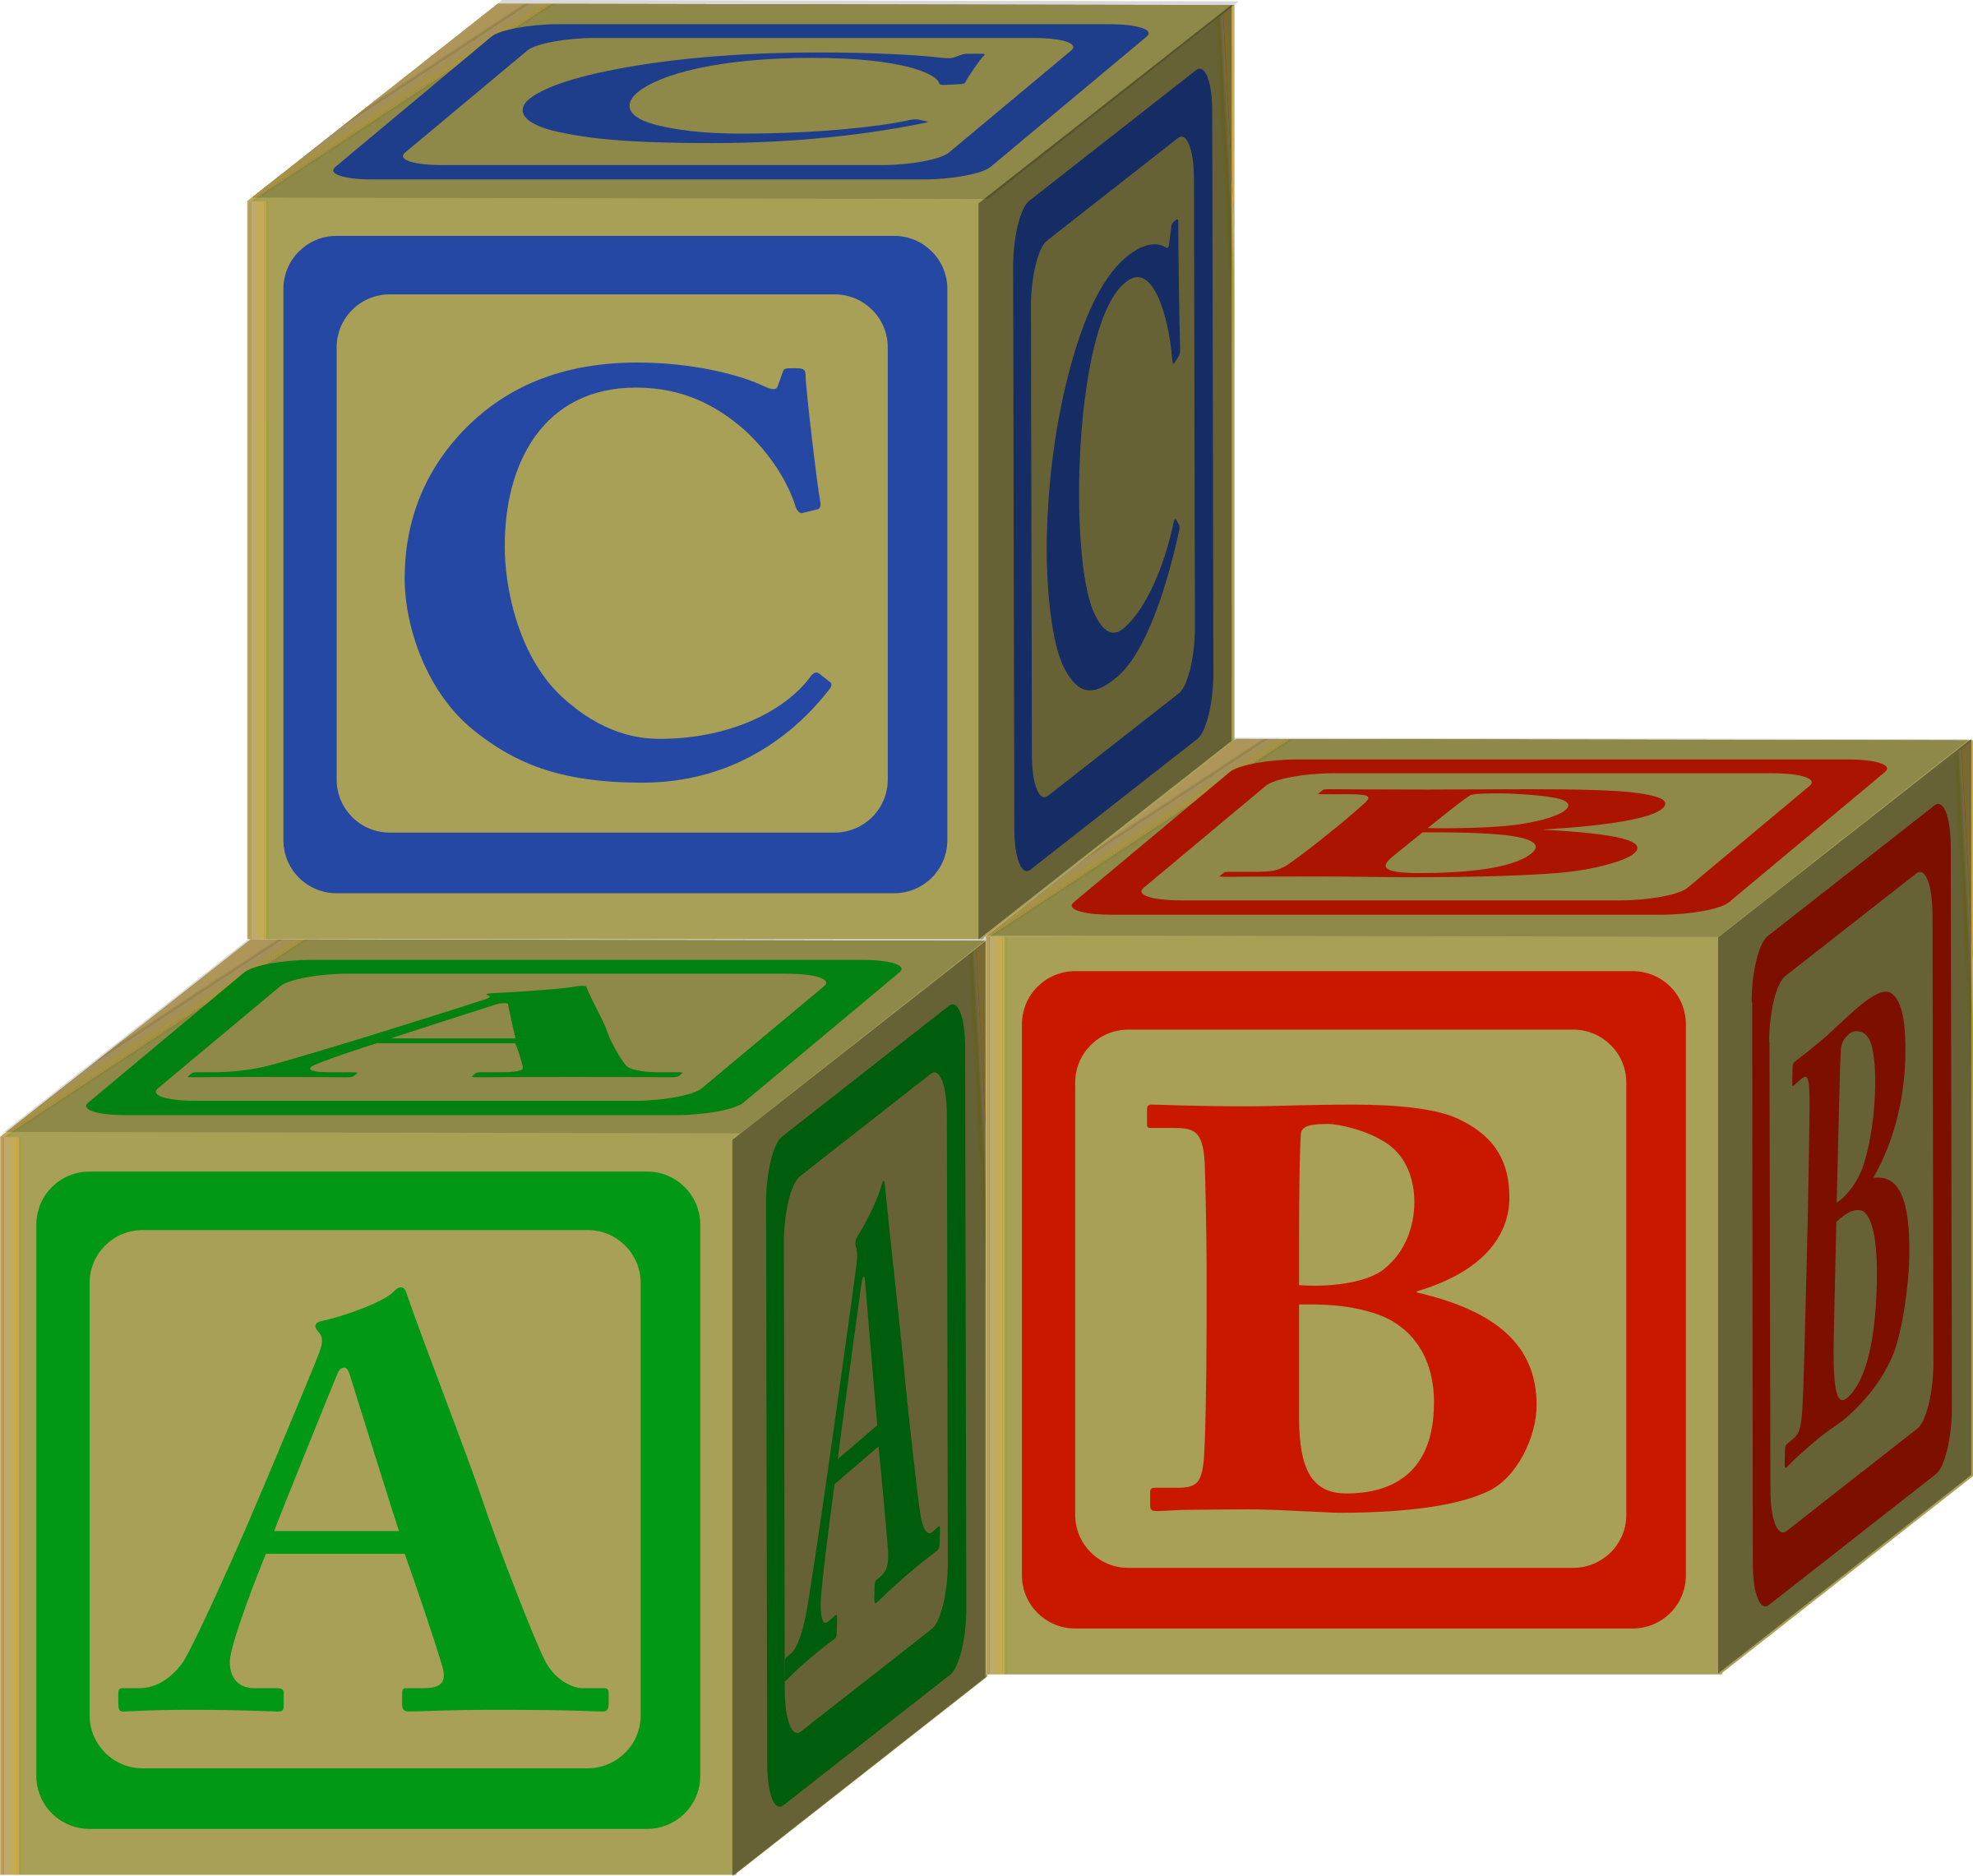 135-1359540_this-free-icons-png-design-of-abc-blocks.png